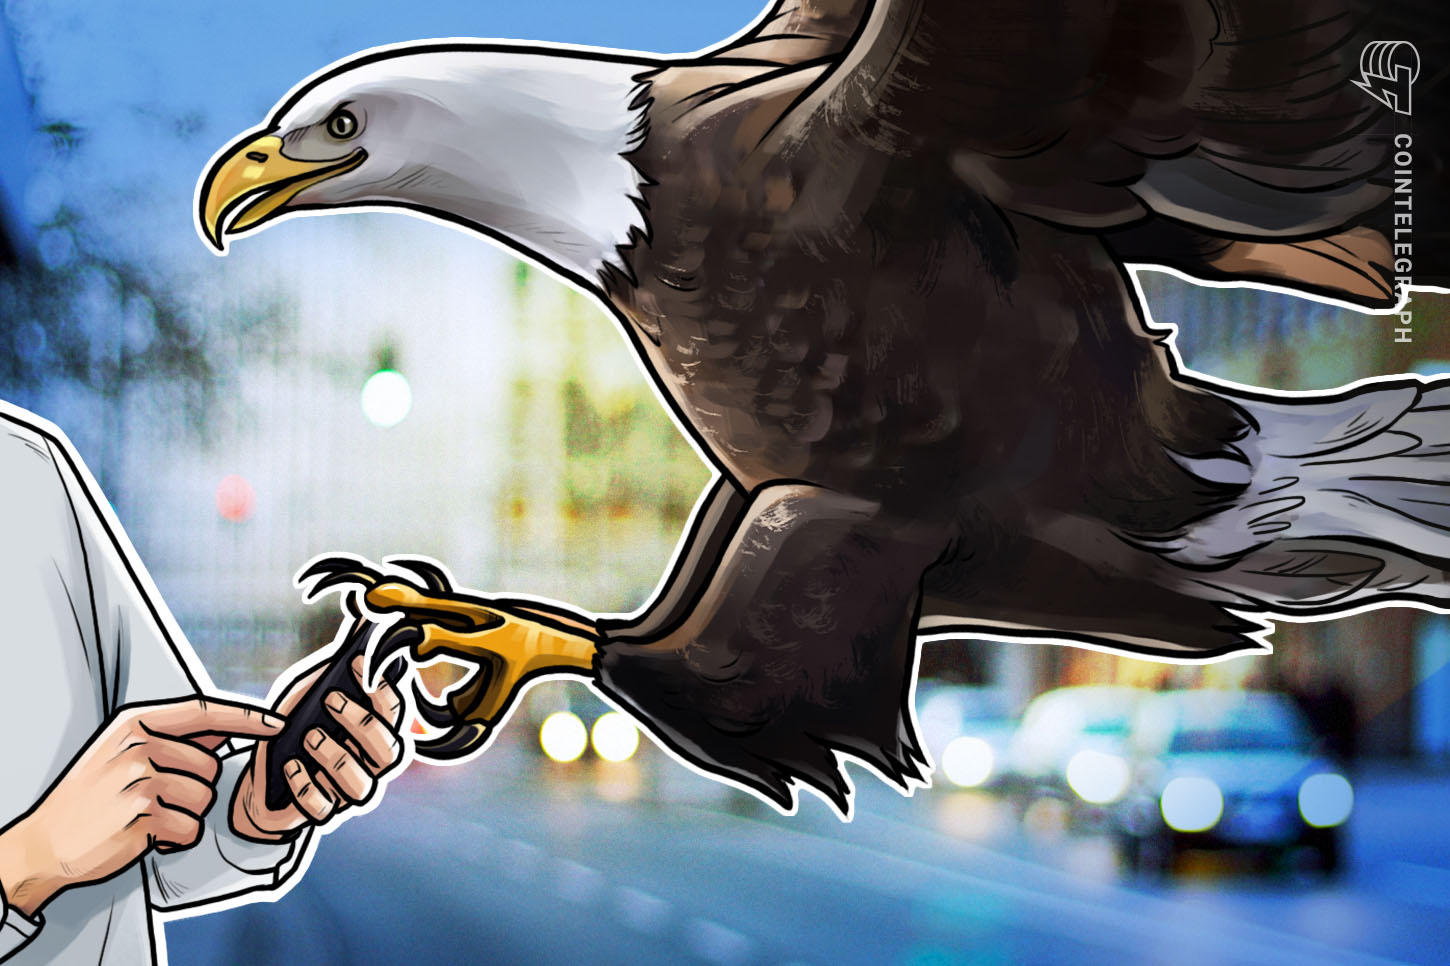 SEC vs Coinbase: Alex Mashinsky says Celsius will have to 'wait and see' on fallout